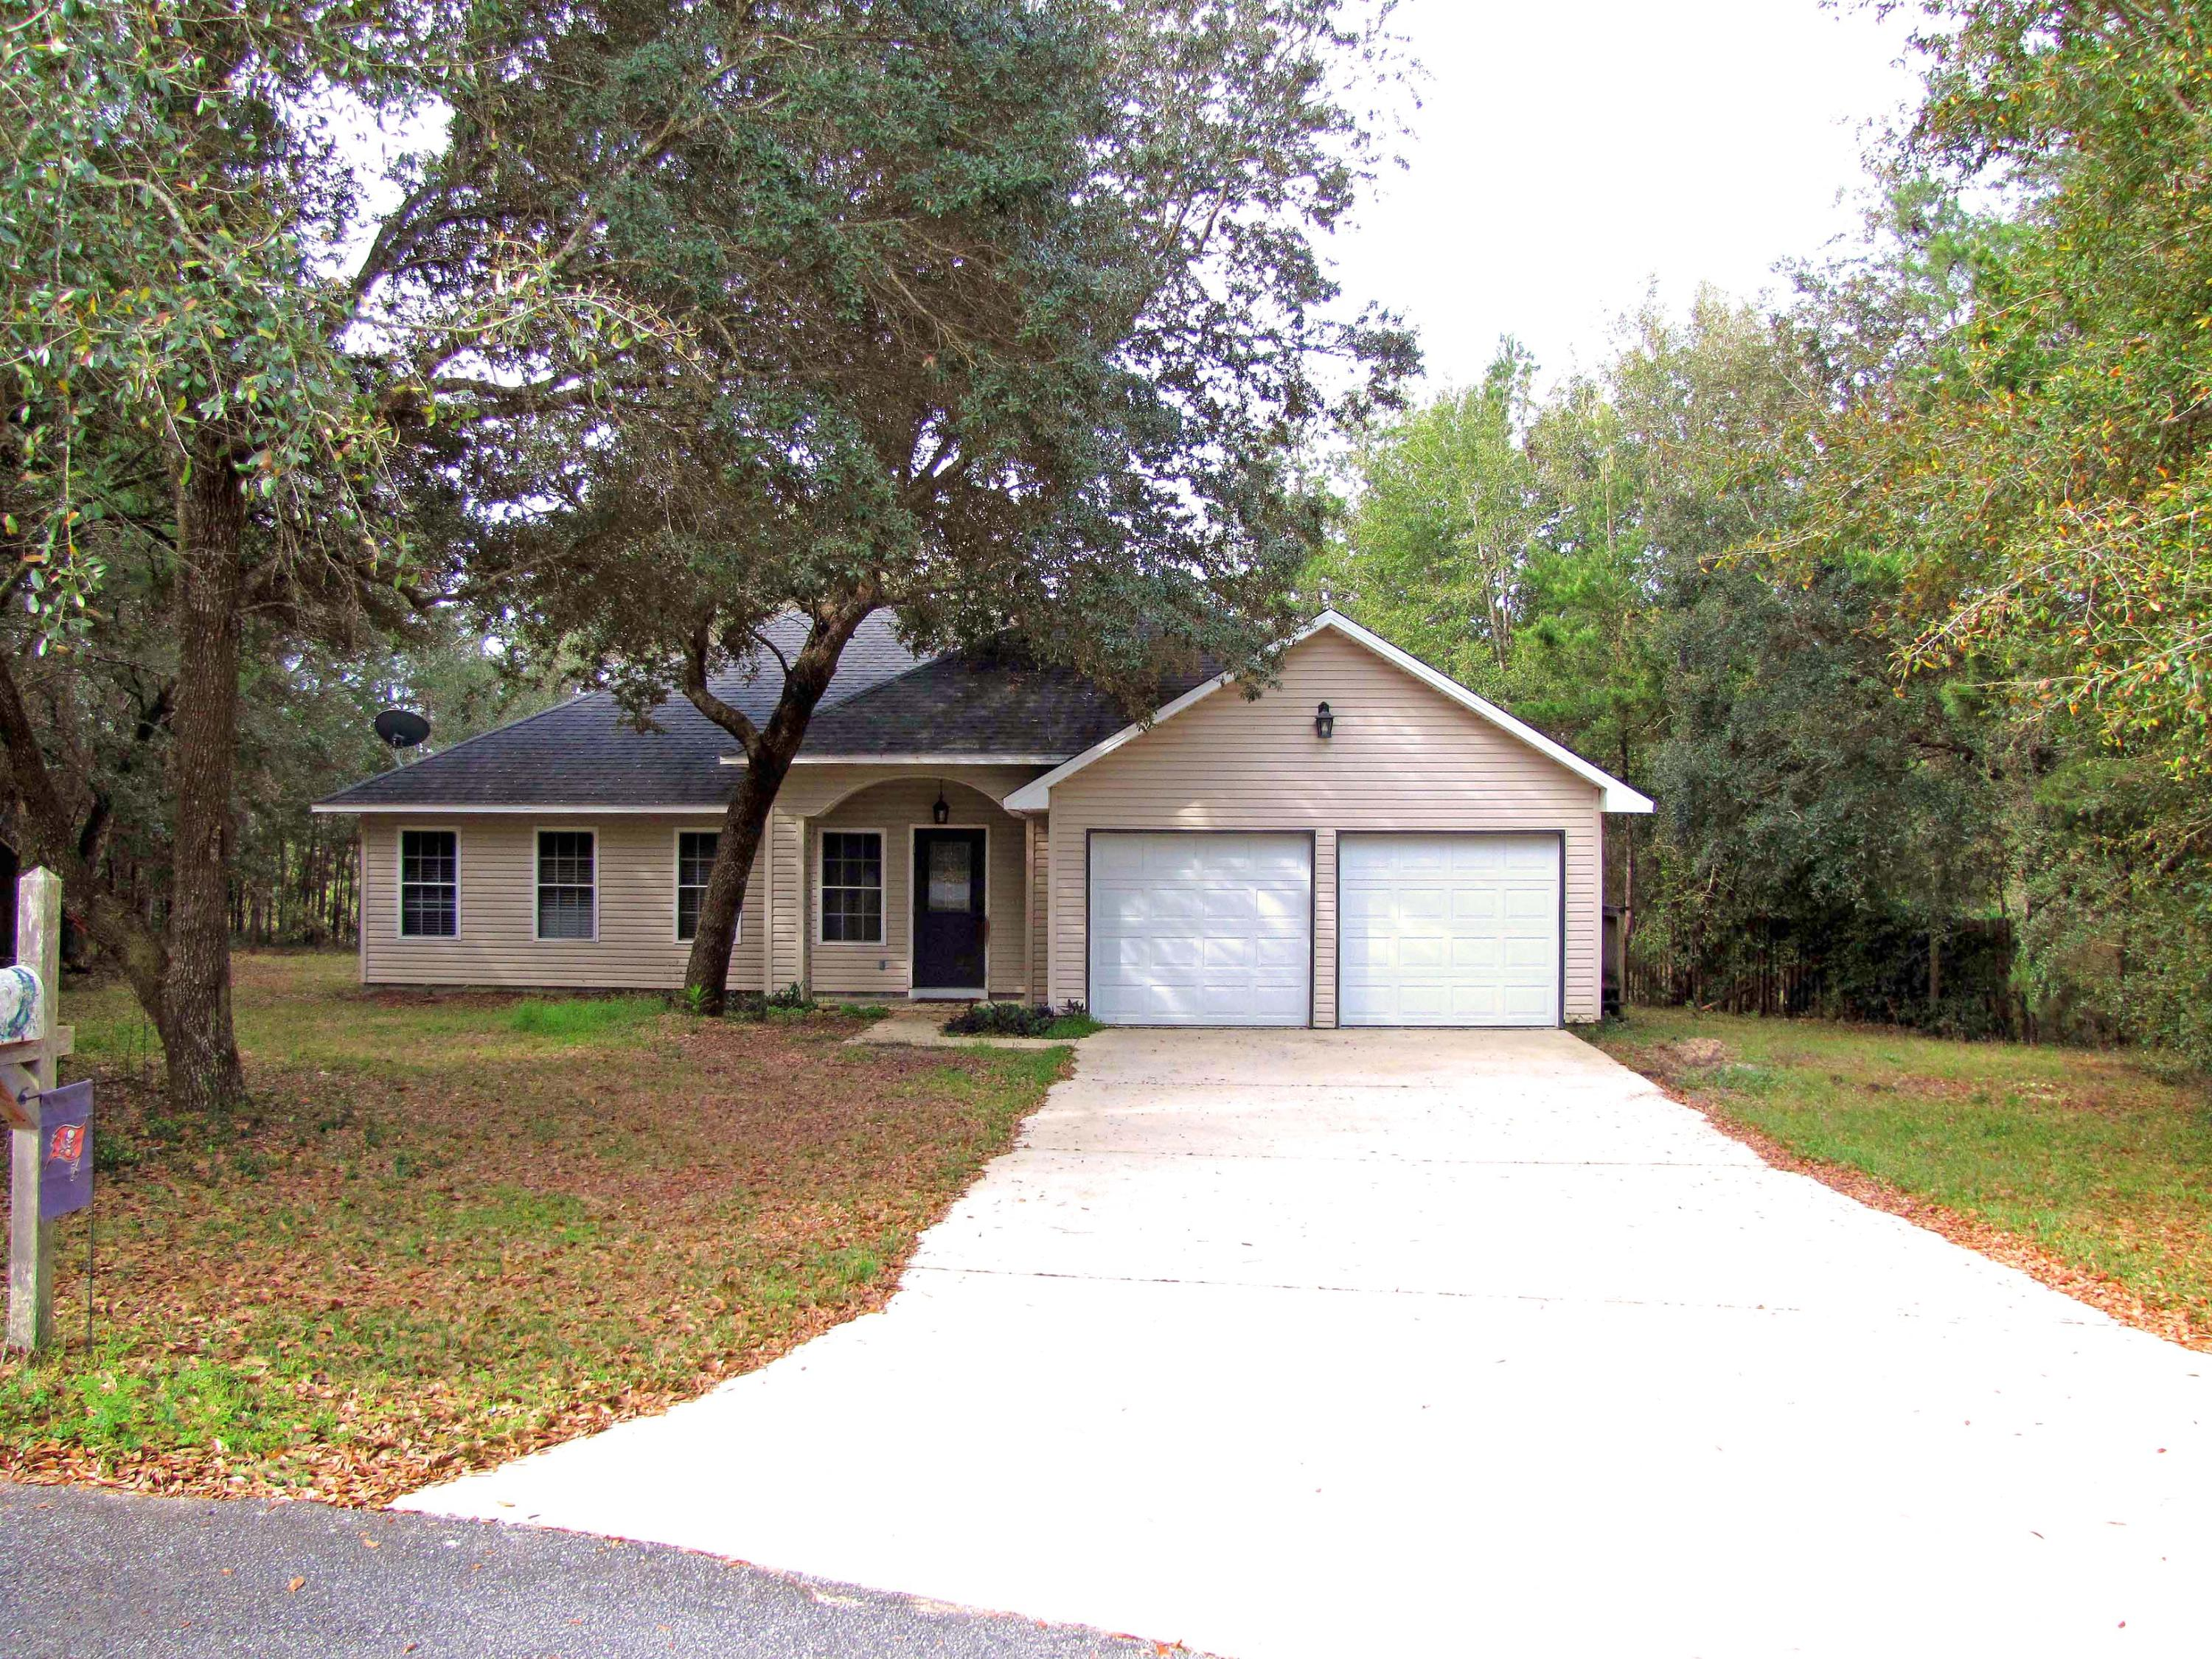 No HOA in this nice neighborhood.  Open floor plan with nice appliances and solid surface counter tops.  New AC in 2011 and new duct work in 2016.  Dimensions are approximate and should be verified.